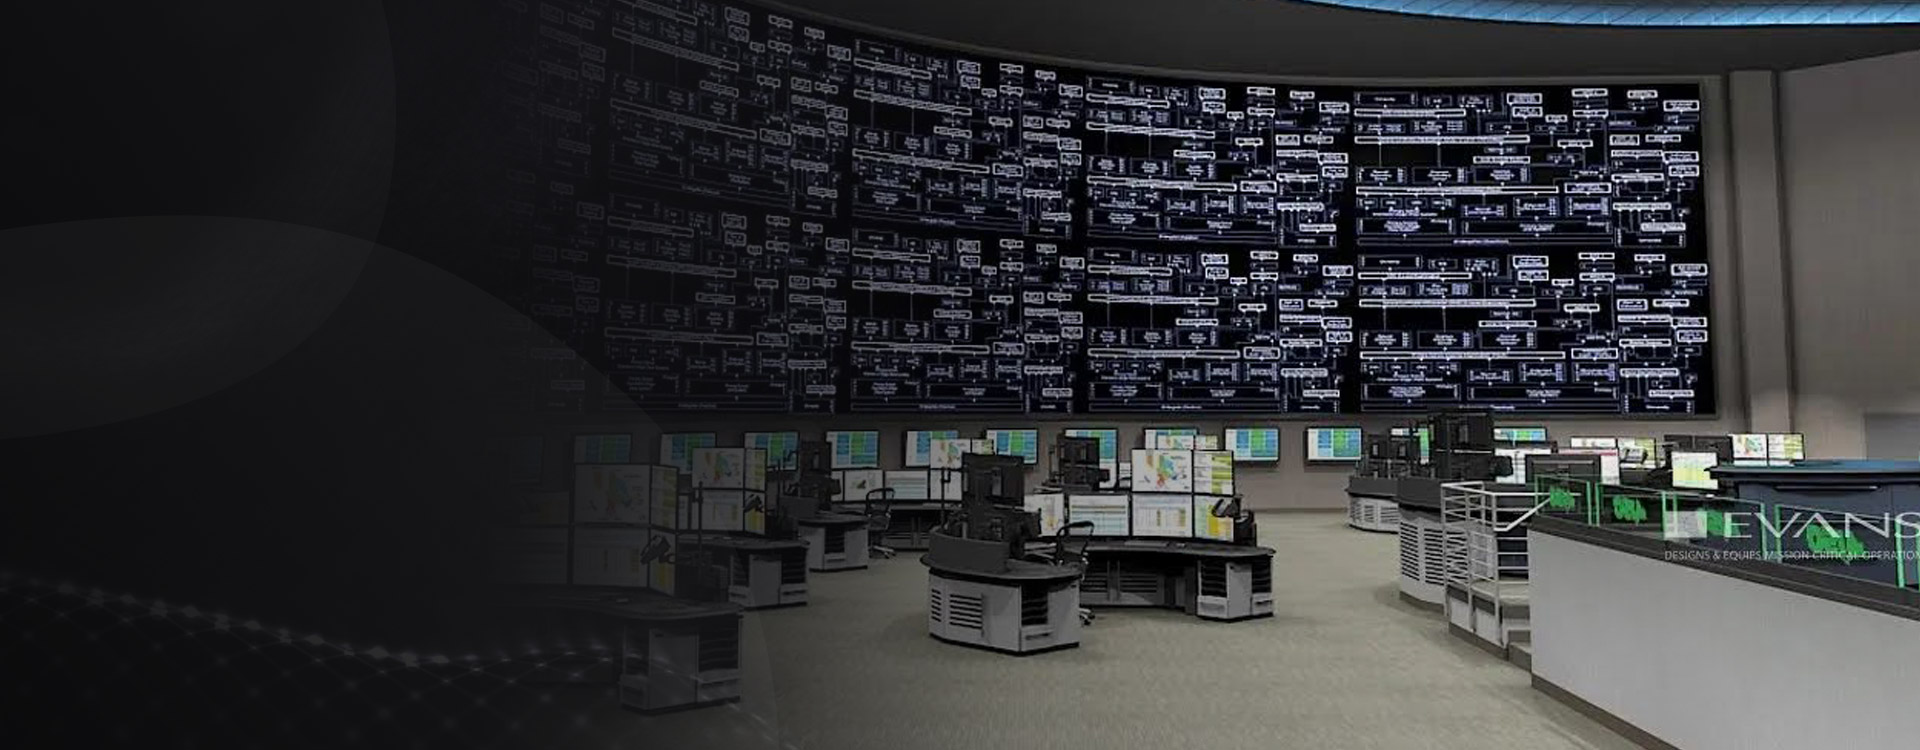 Technical furniture designed specifically for control rooms